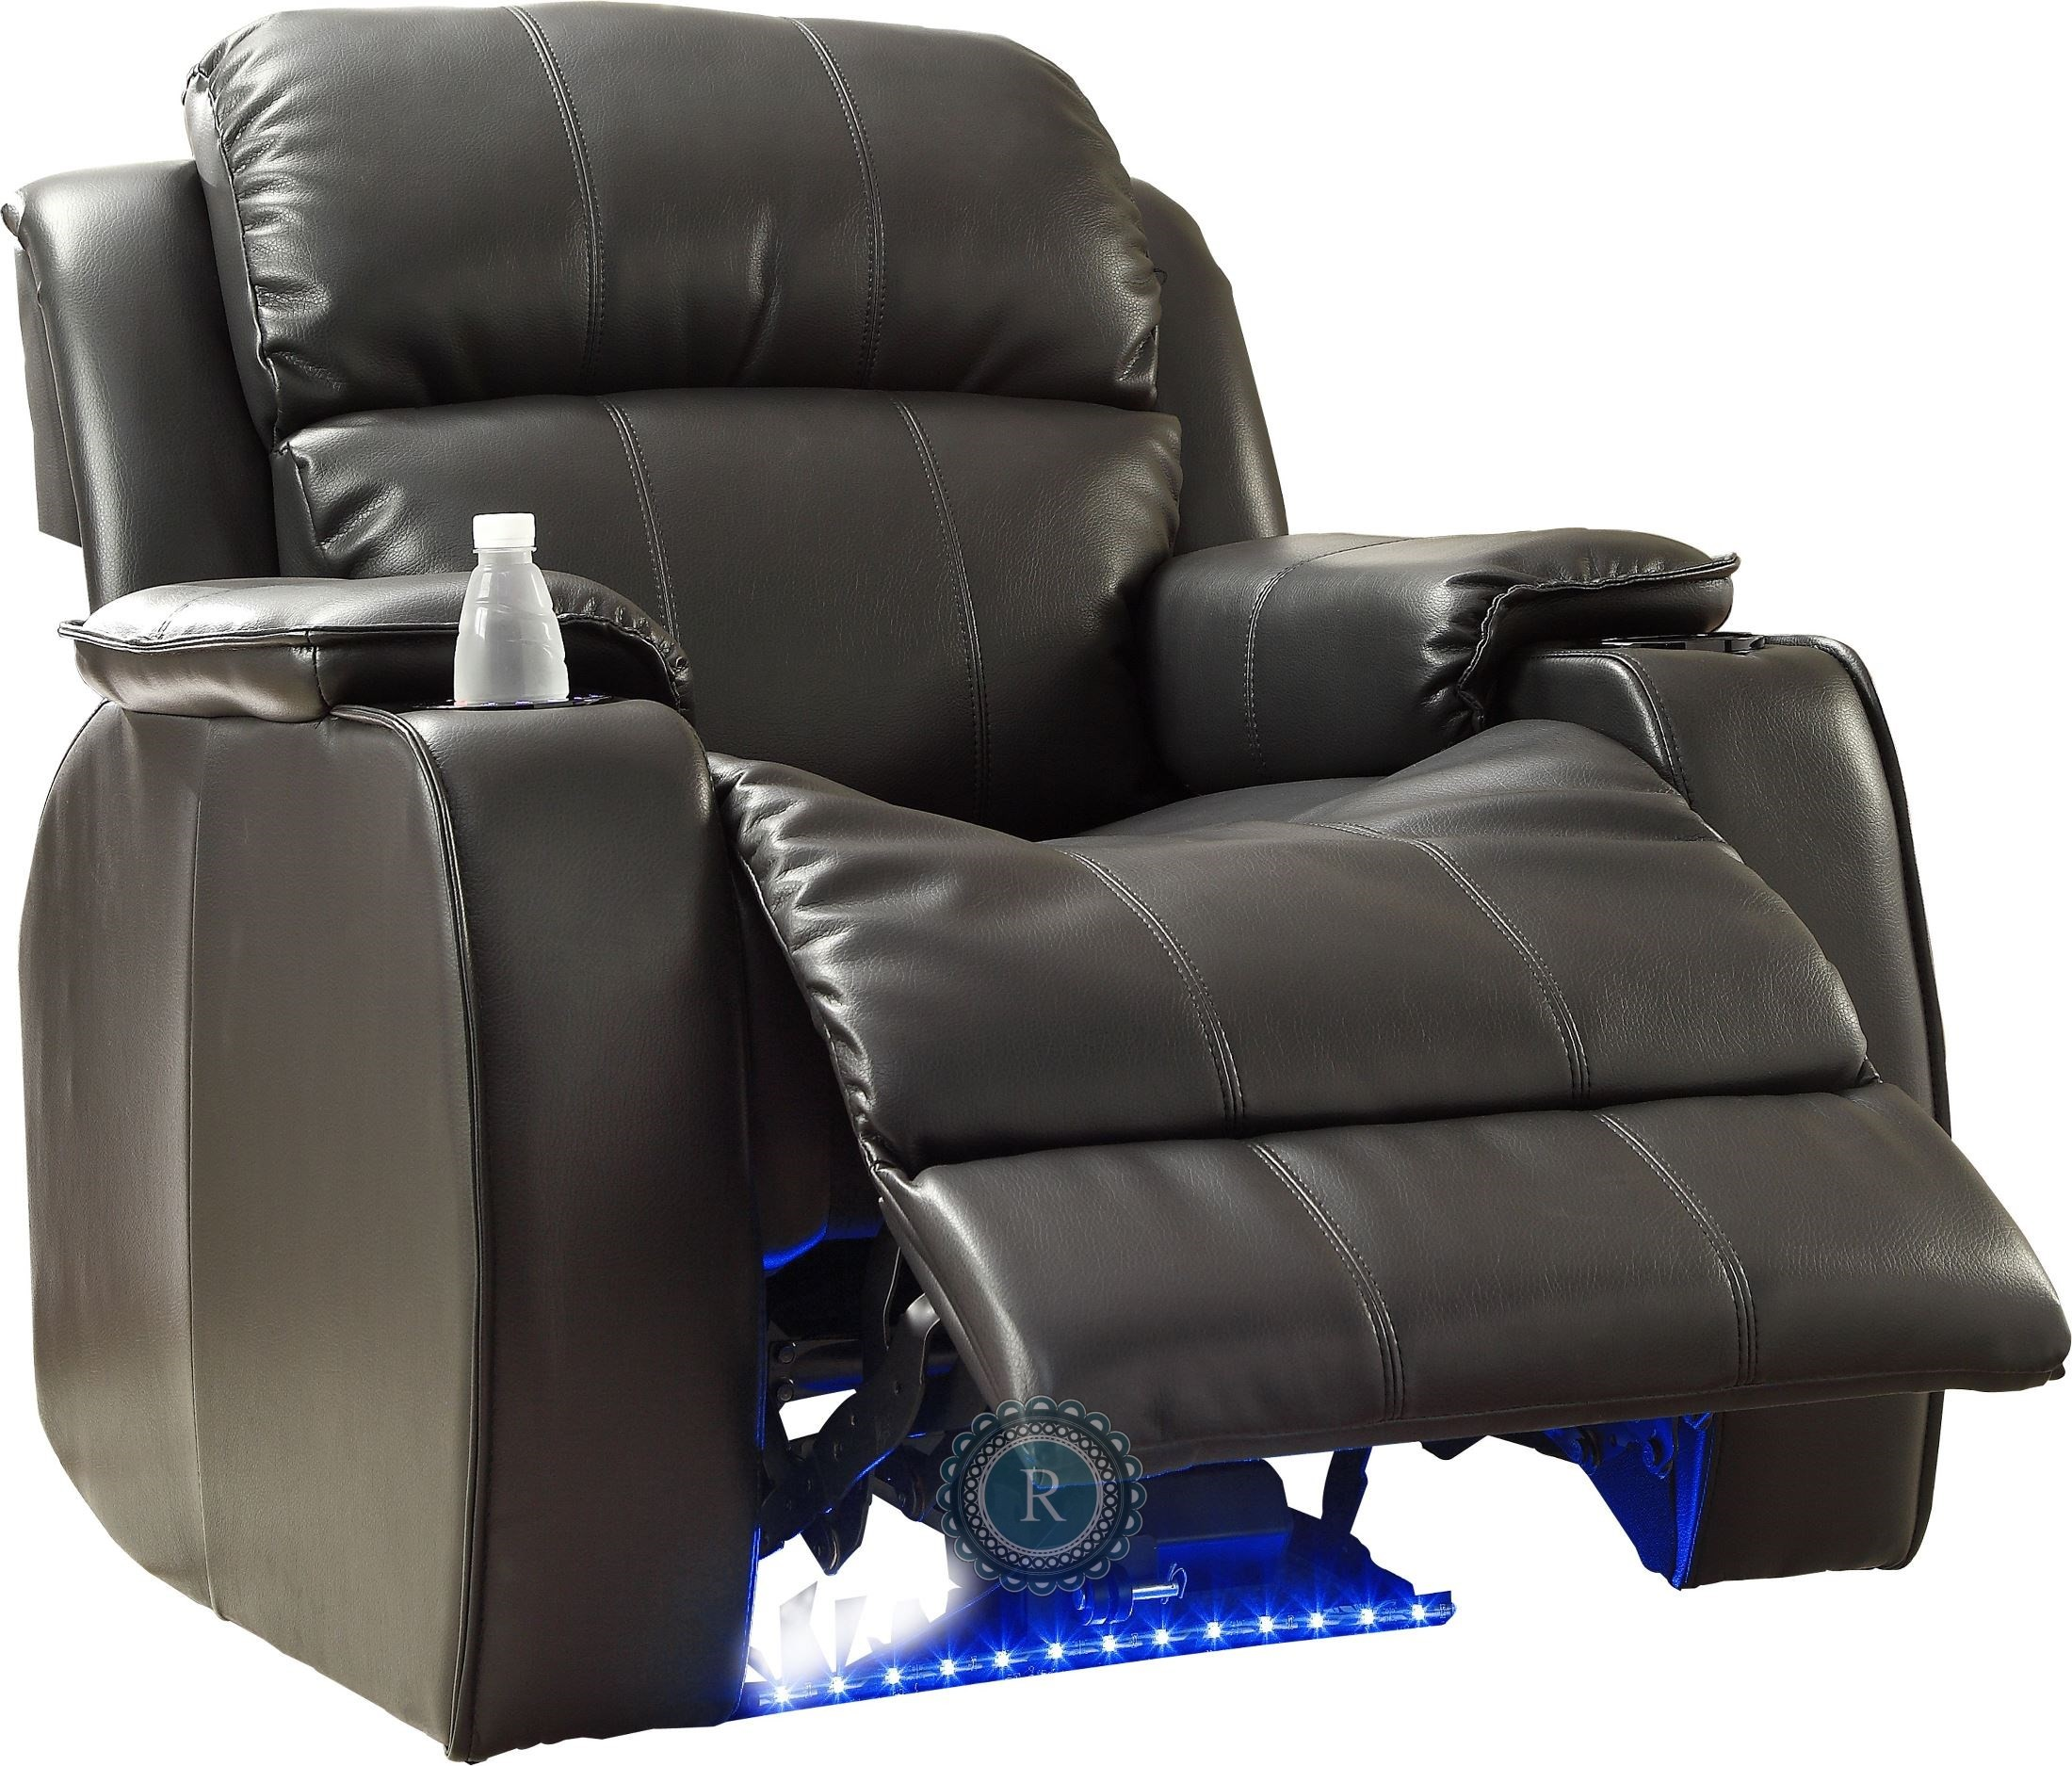 Jimmy Black Power Reclining Chair with Massage LED & Cup Cooler